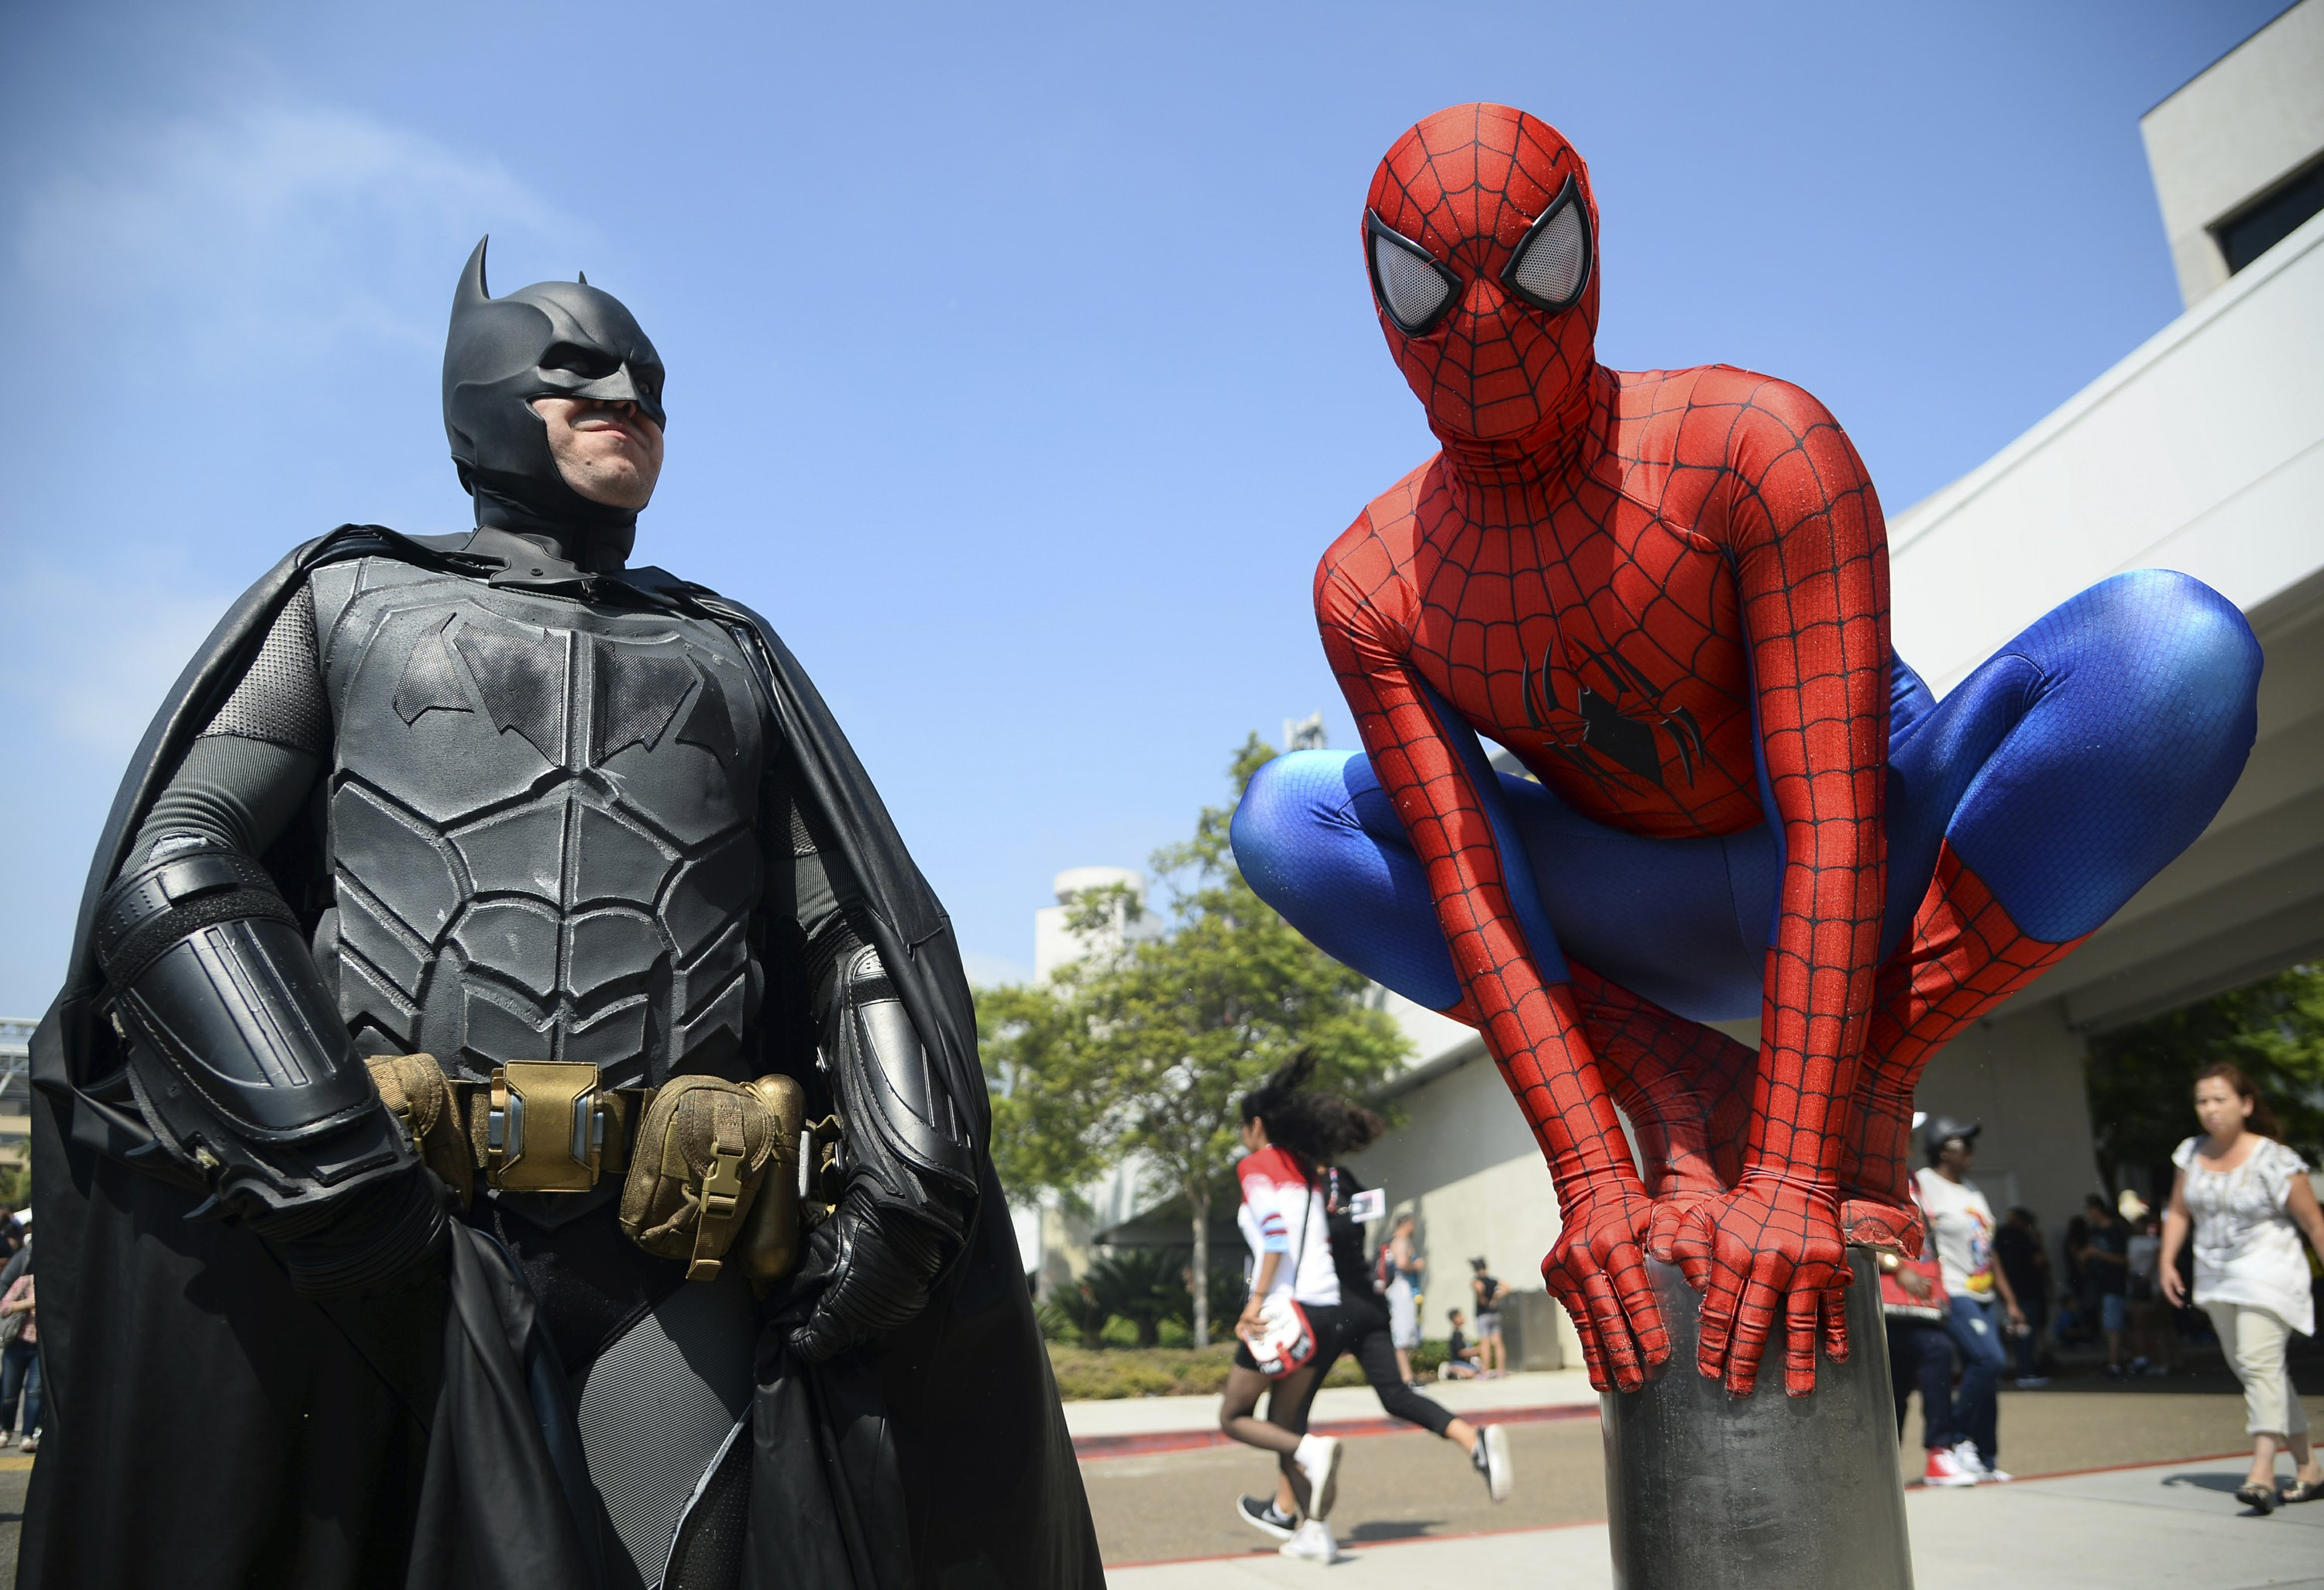 Comic-Con blasts into San Diego with movies, games, shows